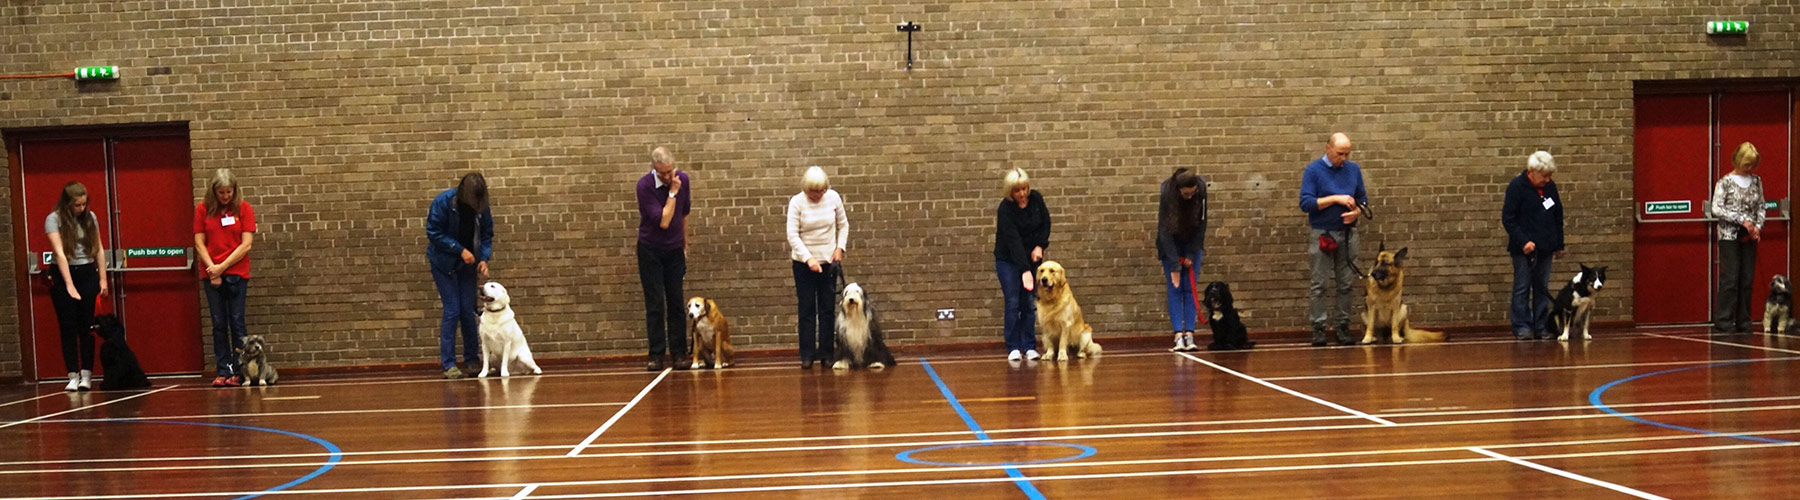 Puppy Dog Obedience Training Classes Glasgow Scotland